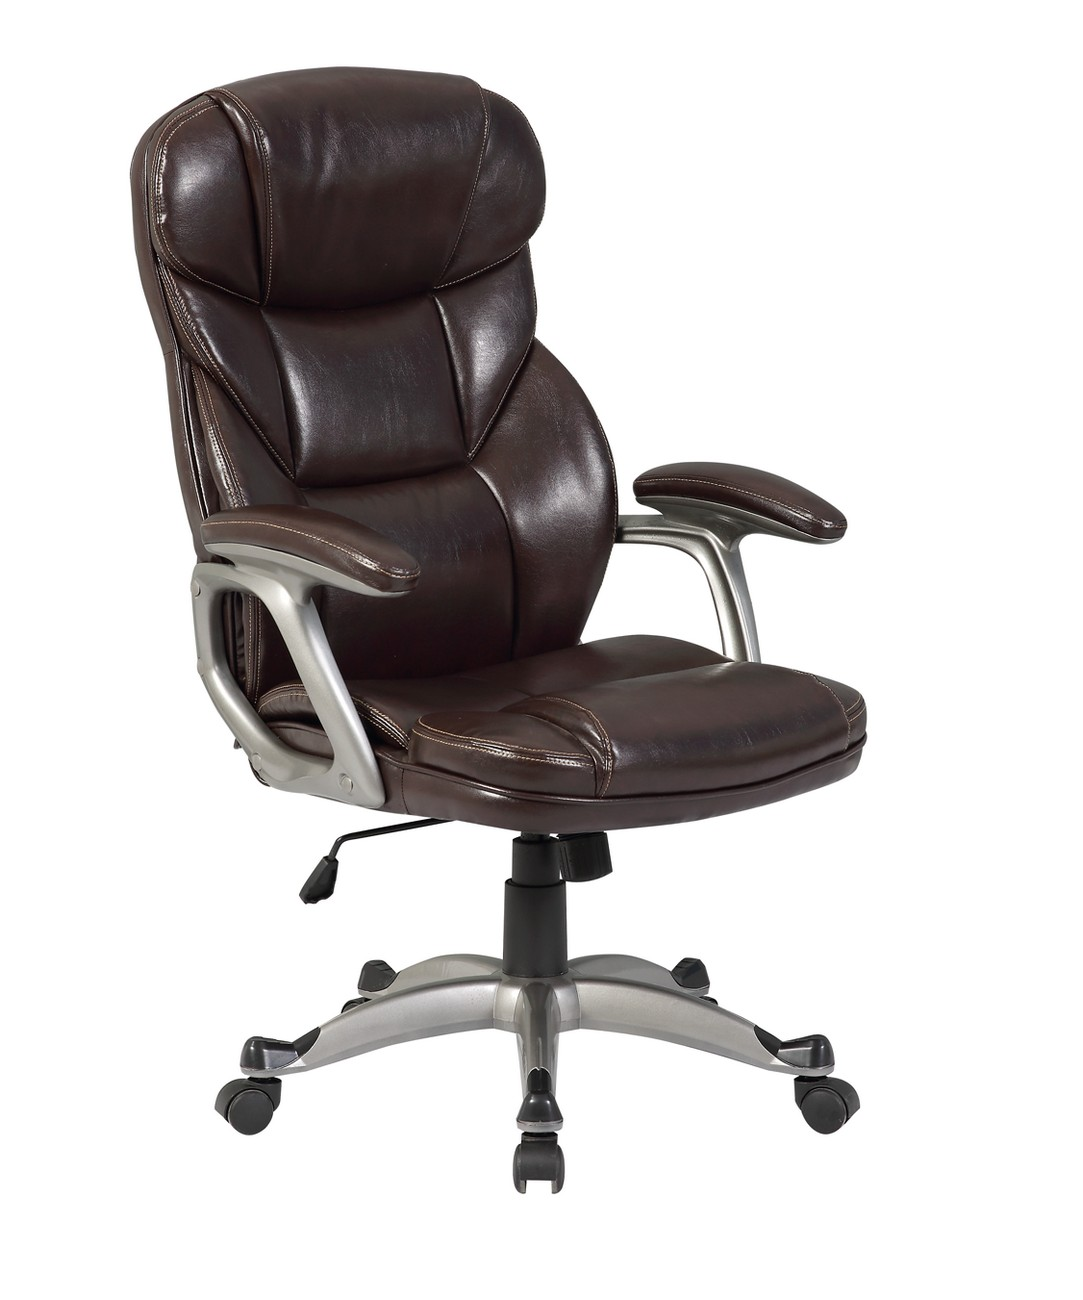 Comfortable Office Chairs Executive Office Chair Pu Leather Ergonomic High Back Desk